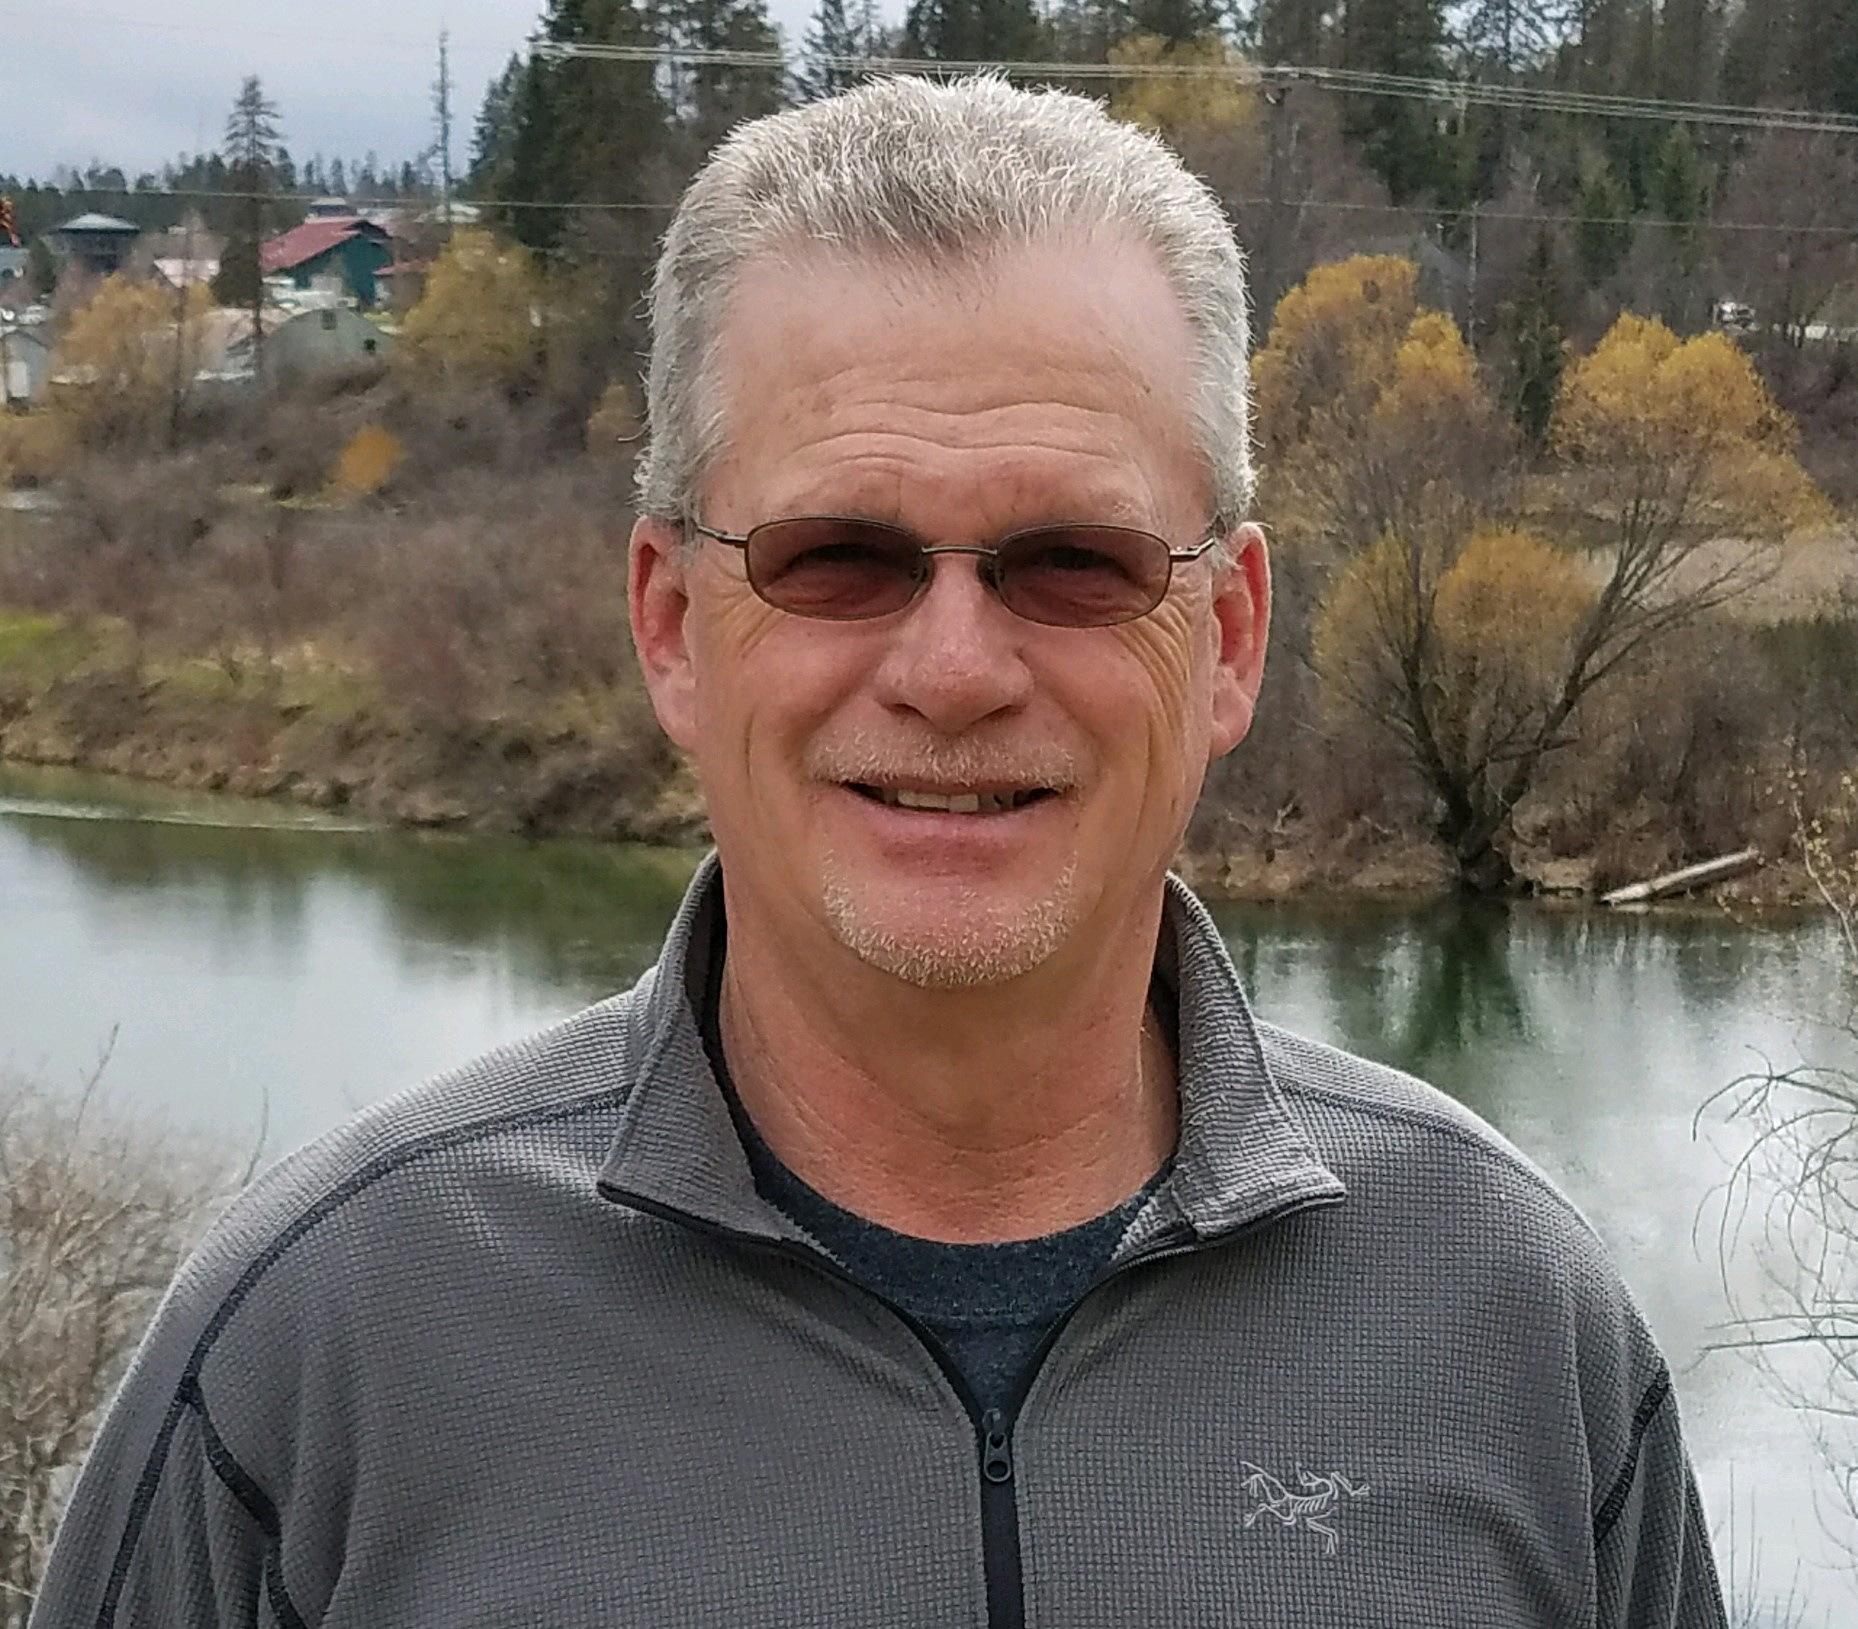 Steve Boone - Whitefish Real Estate Agent - RE/MAX of Whitefish, MT Client Advocate and Community Service